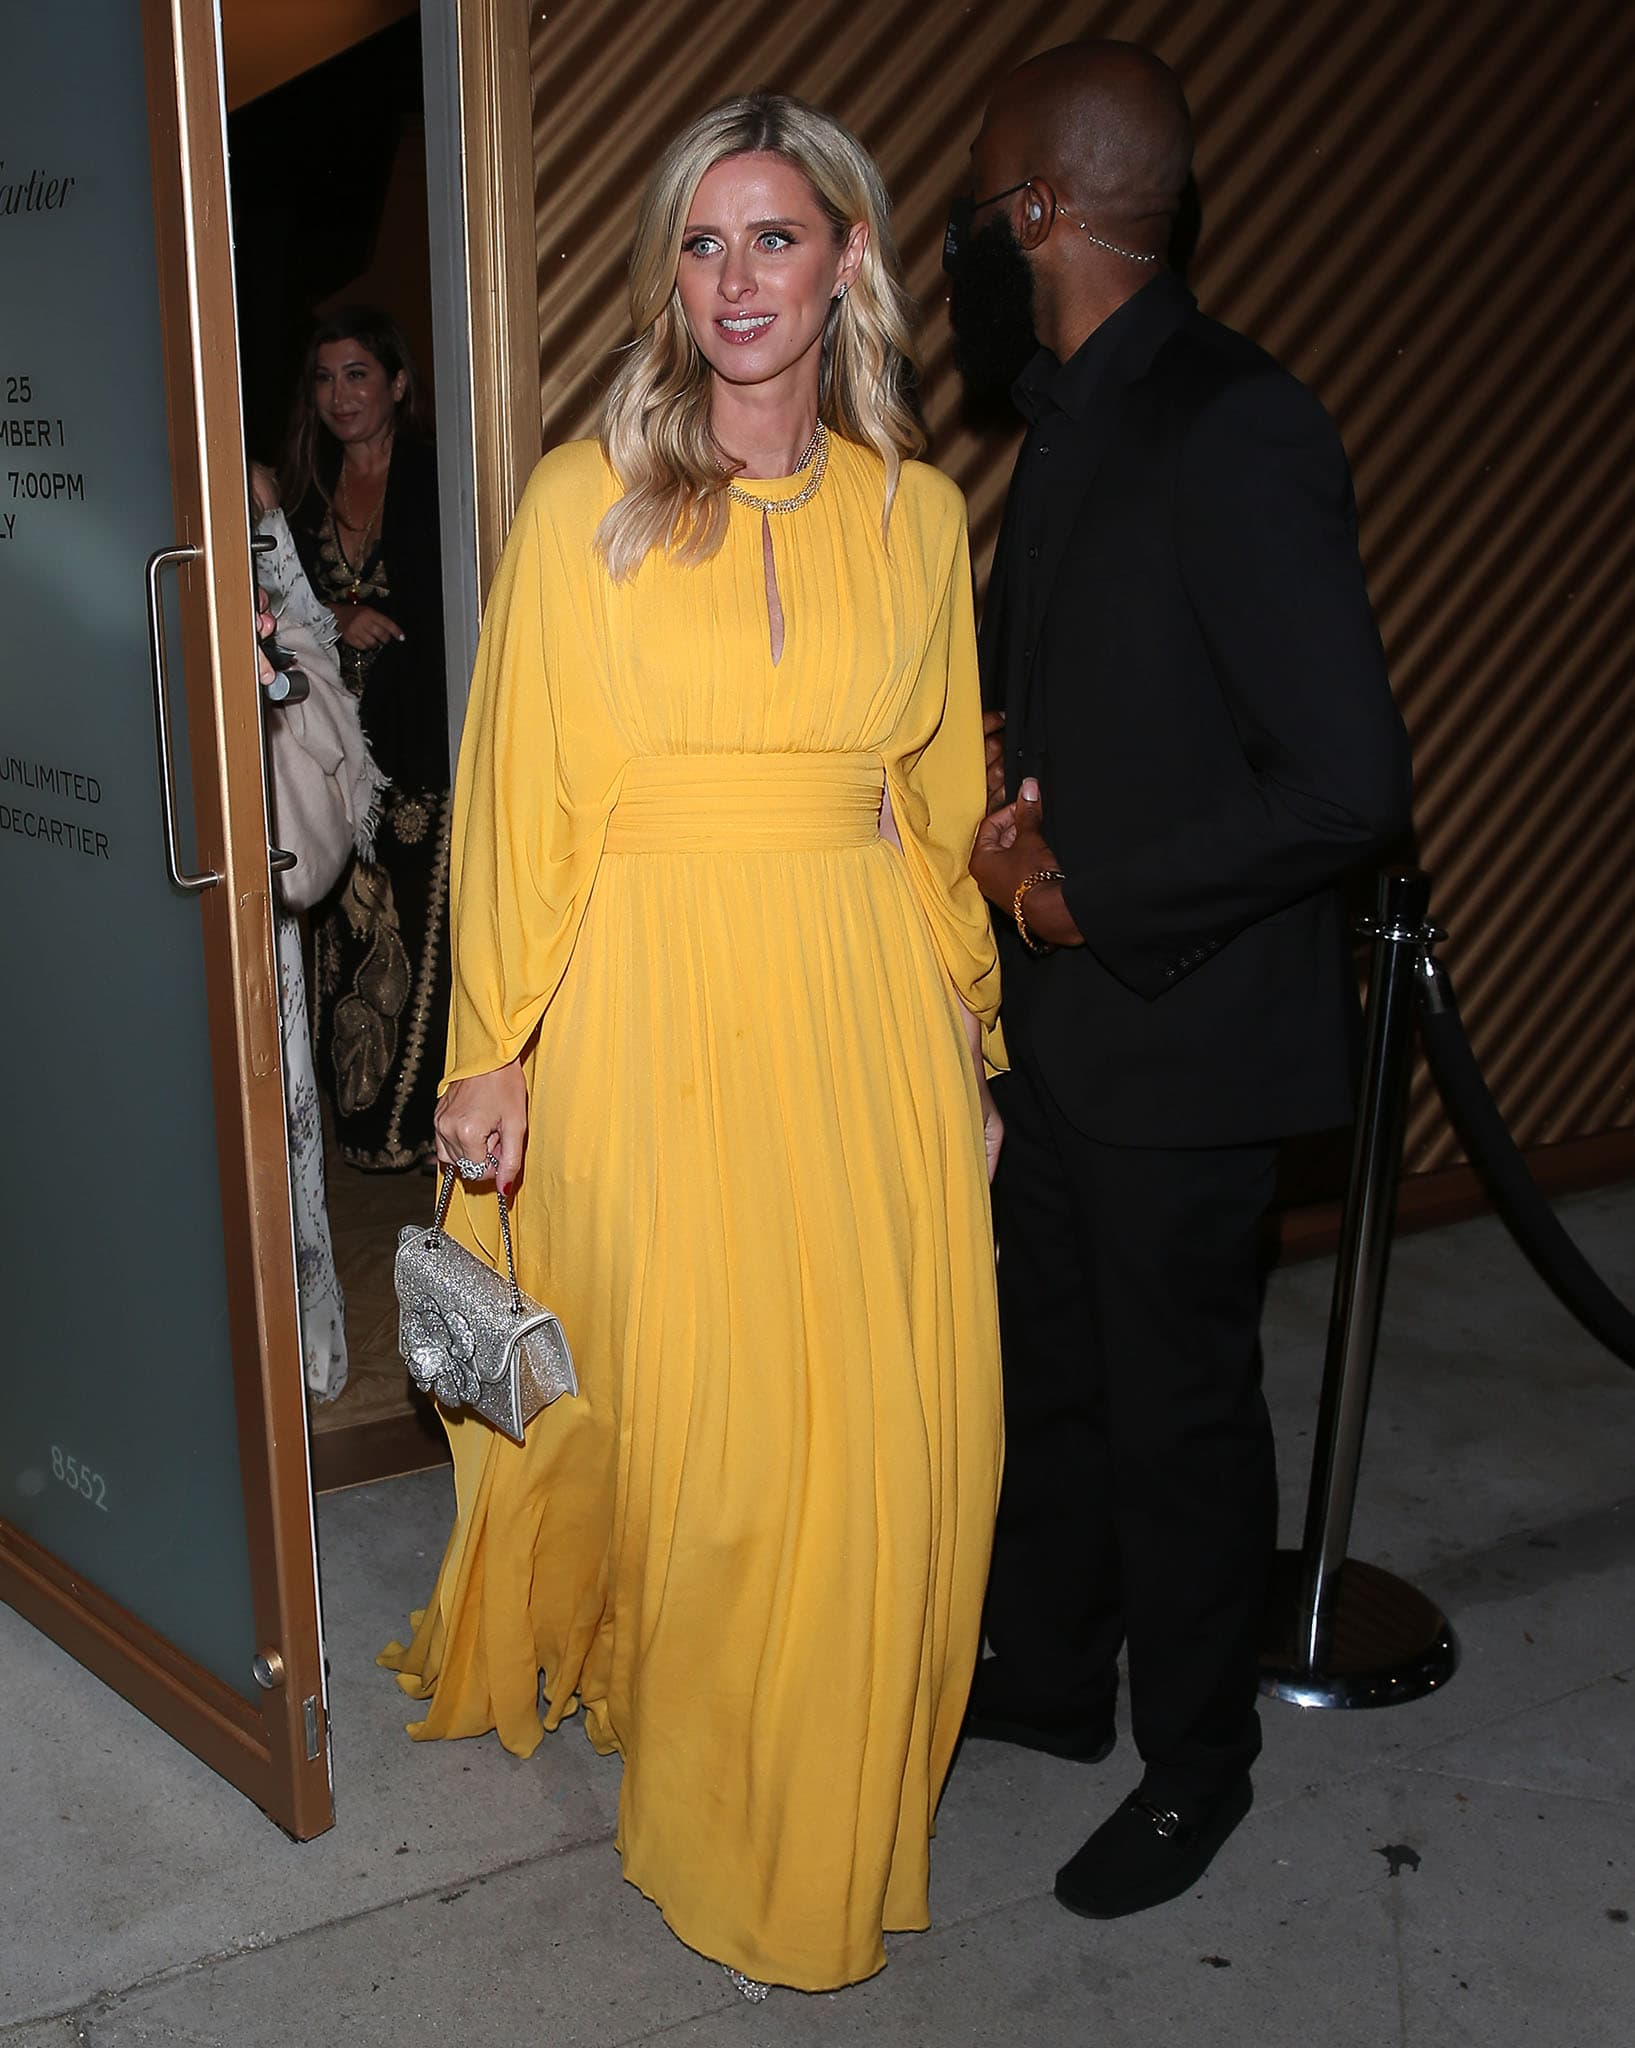 Nicky Hilton leaving Cartier's Clash de Cartier event in West Hollywood on August 25, 2021